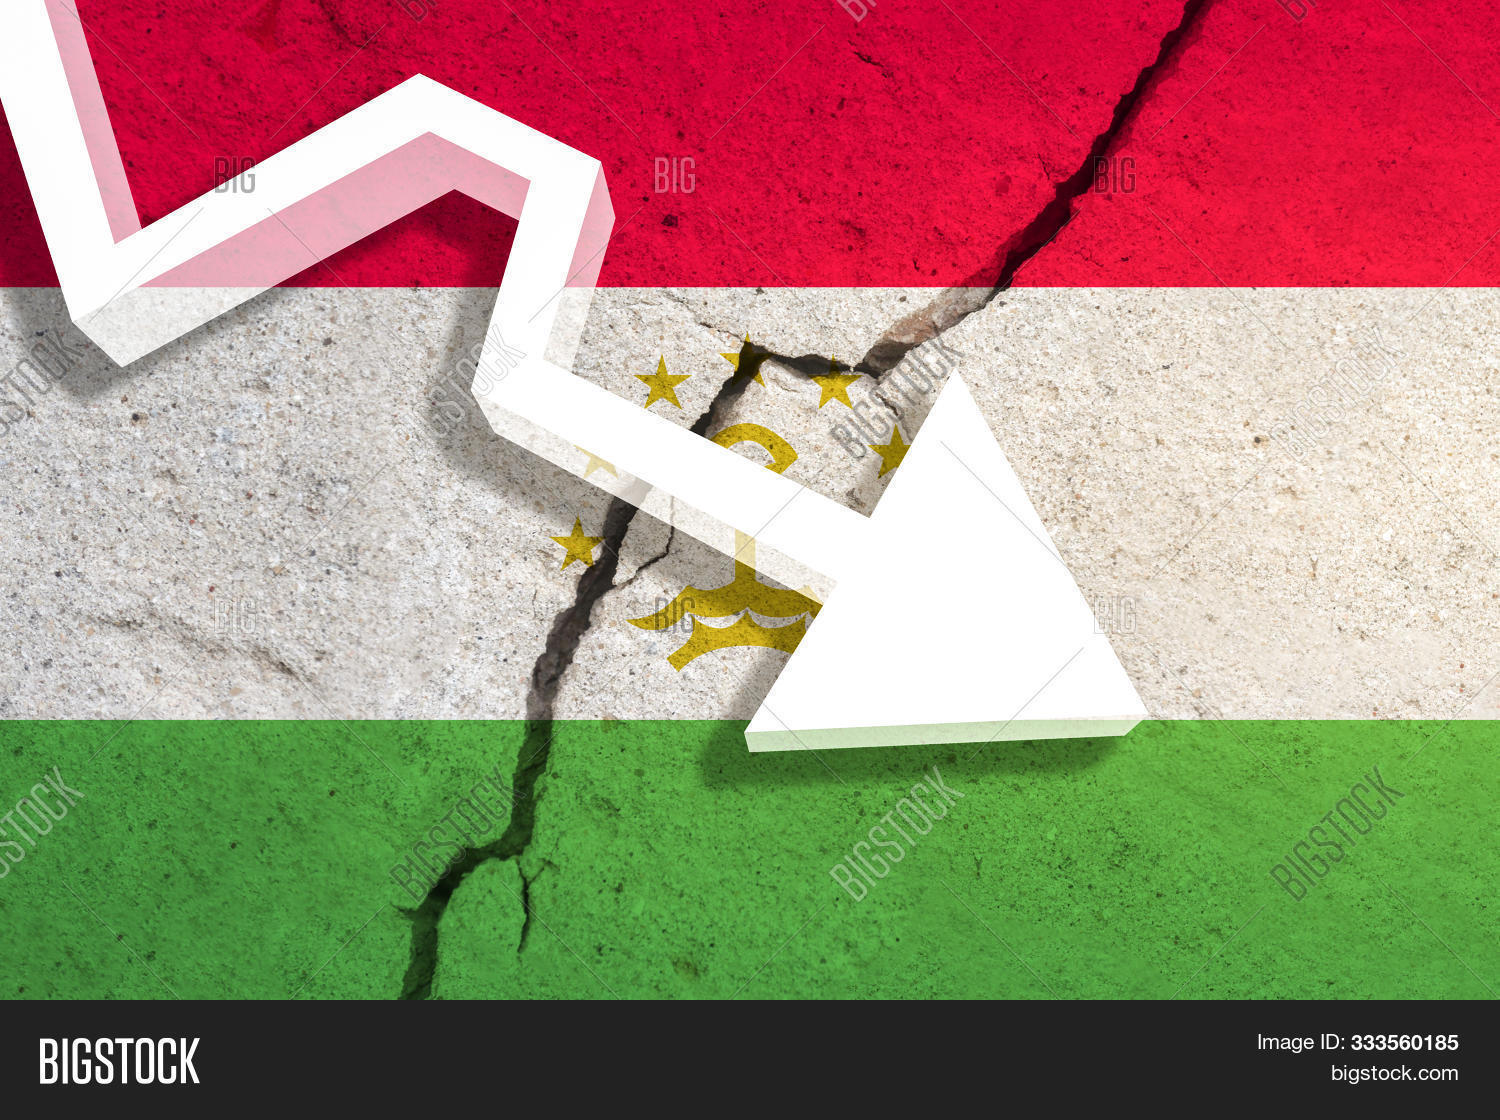 Tajikistan,analysis,arrow,bad,bank,banking,bankruptcy,banner,business,buy,company,crash,crisis,currency,dangerous,debt,decline,depressed,depression,display,down,economy,exchange,failure,fall,falling,finance,financial,flag,inflation,investment,job,market,money,pay,price,problem,reduction,risk,safety,savings,sell,symbol,textile,trade,trouble,wave